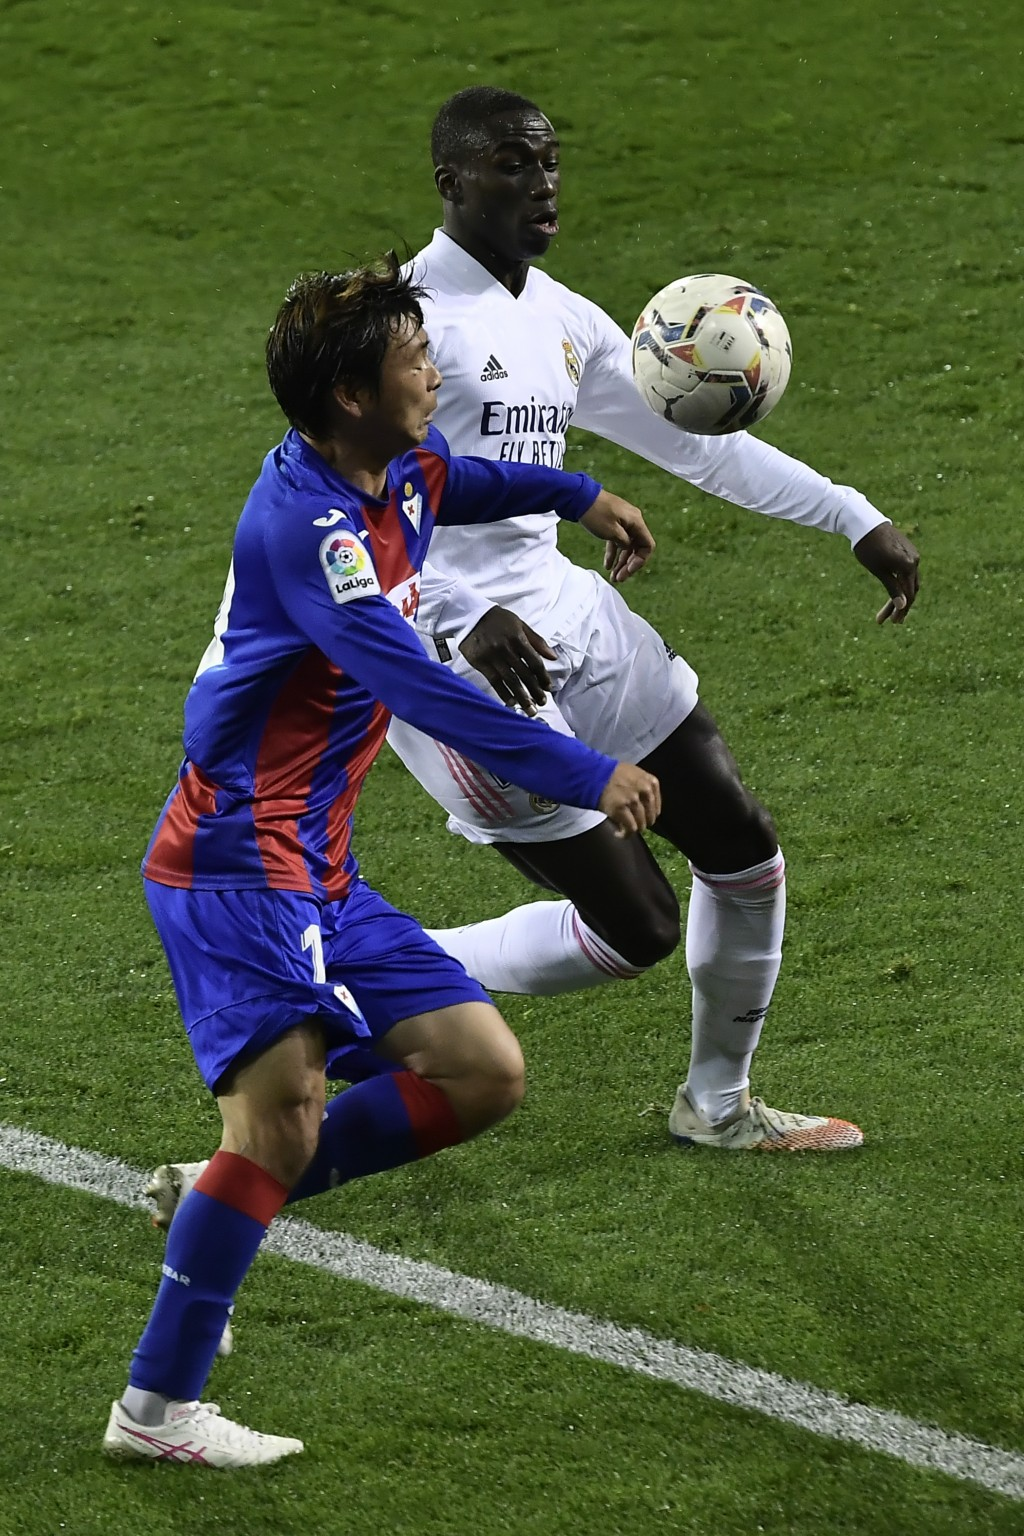 Real Madrid's Ferland Mendy, right views for the ball with Eibar's Tasahi Inui during the Spanish La Liga soccer match between Eibar and Real Madrid, ...